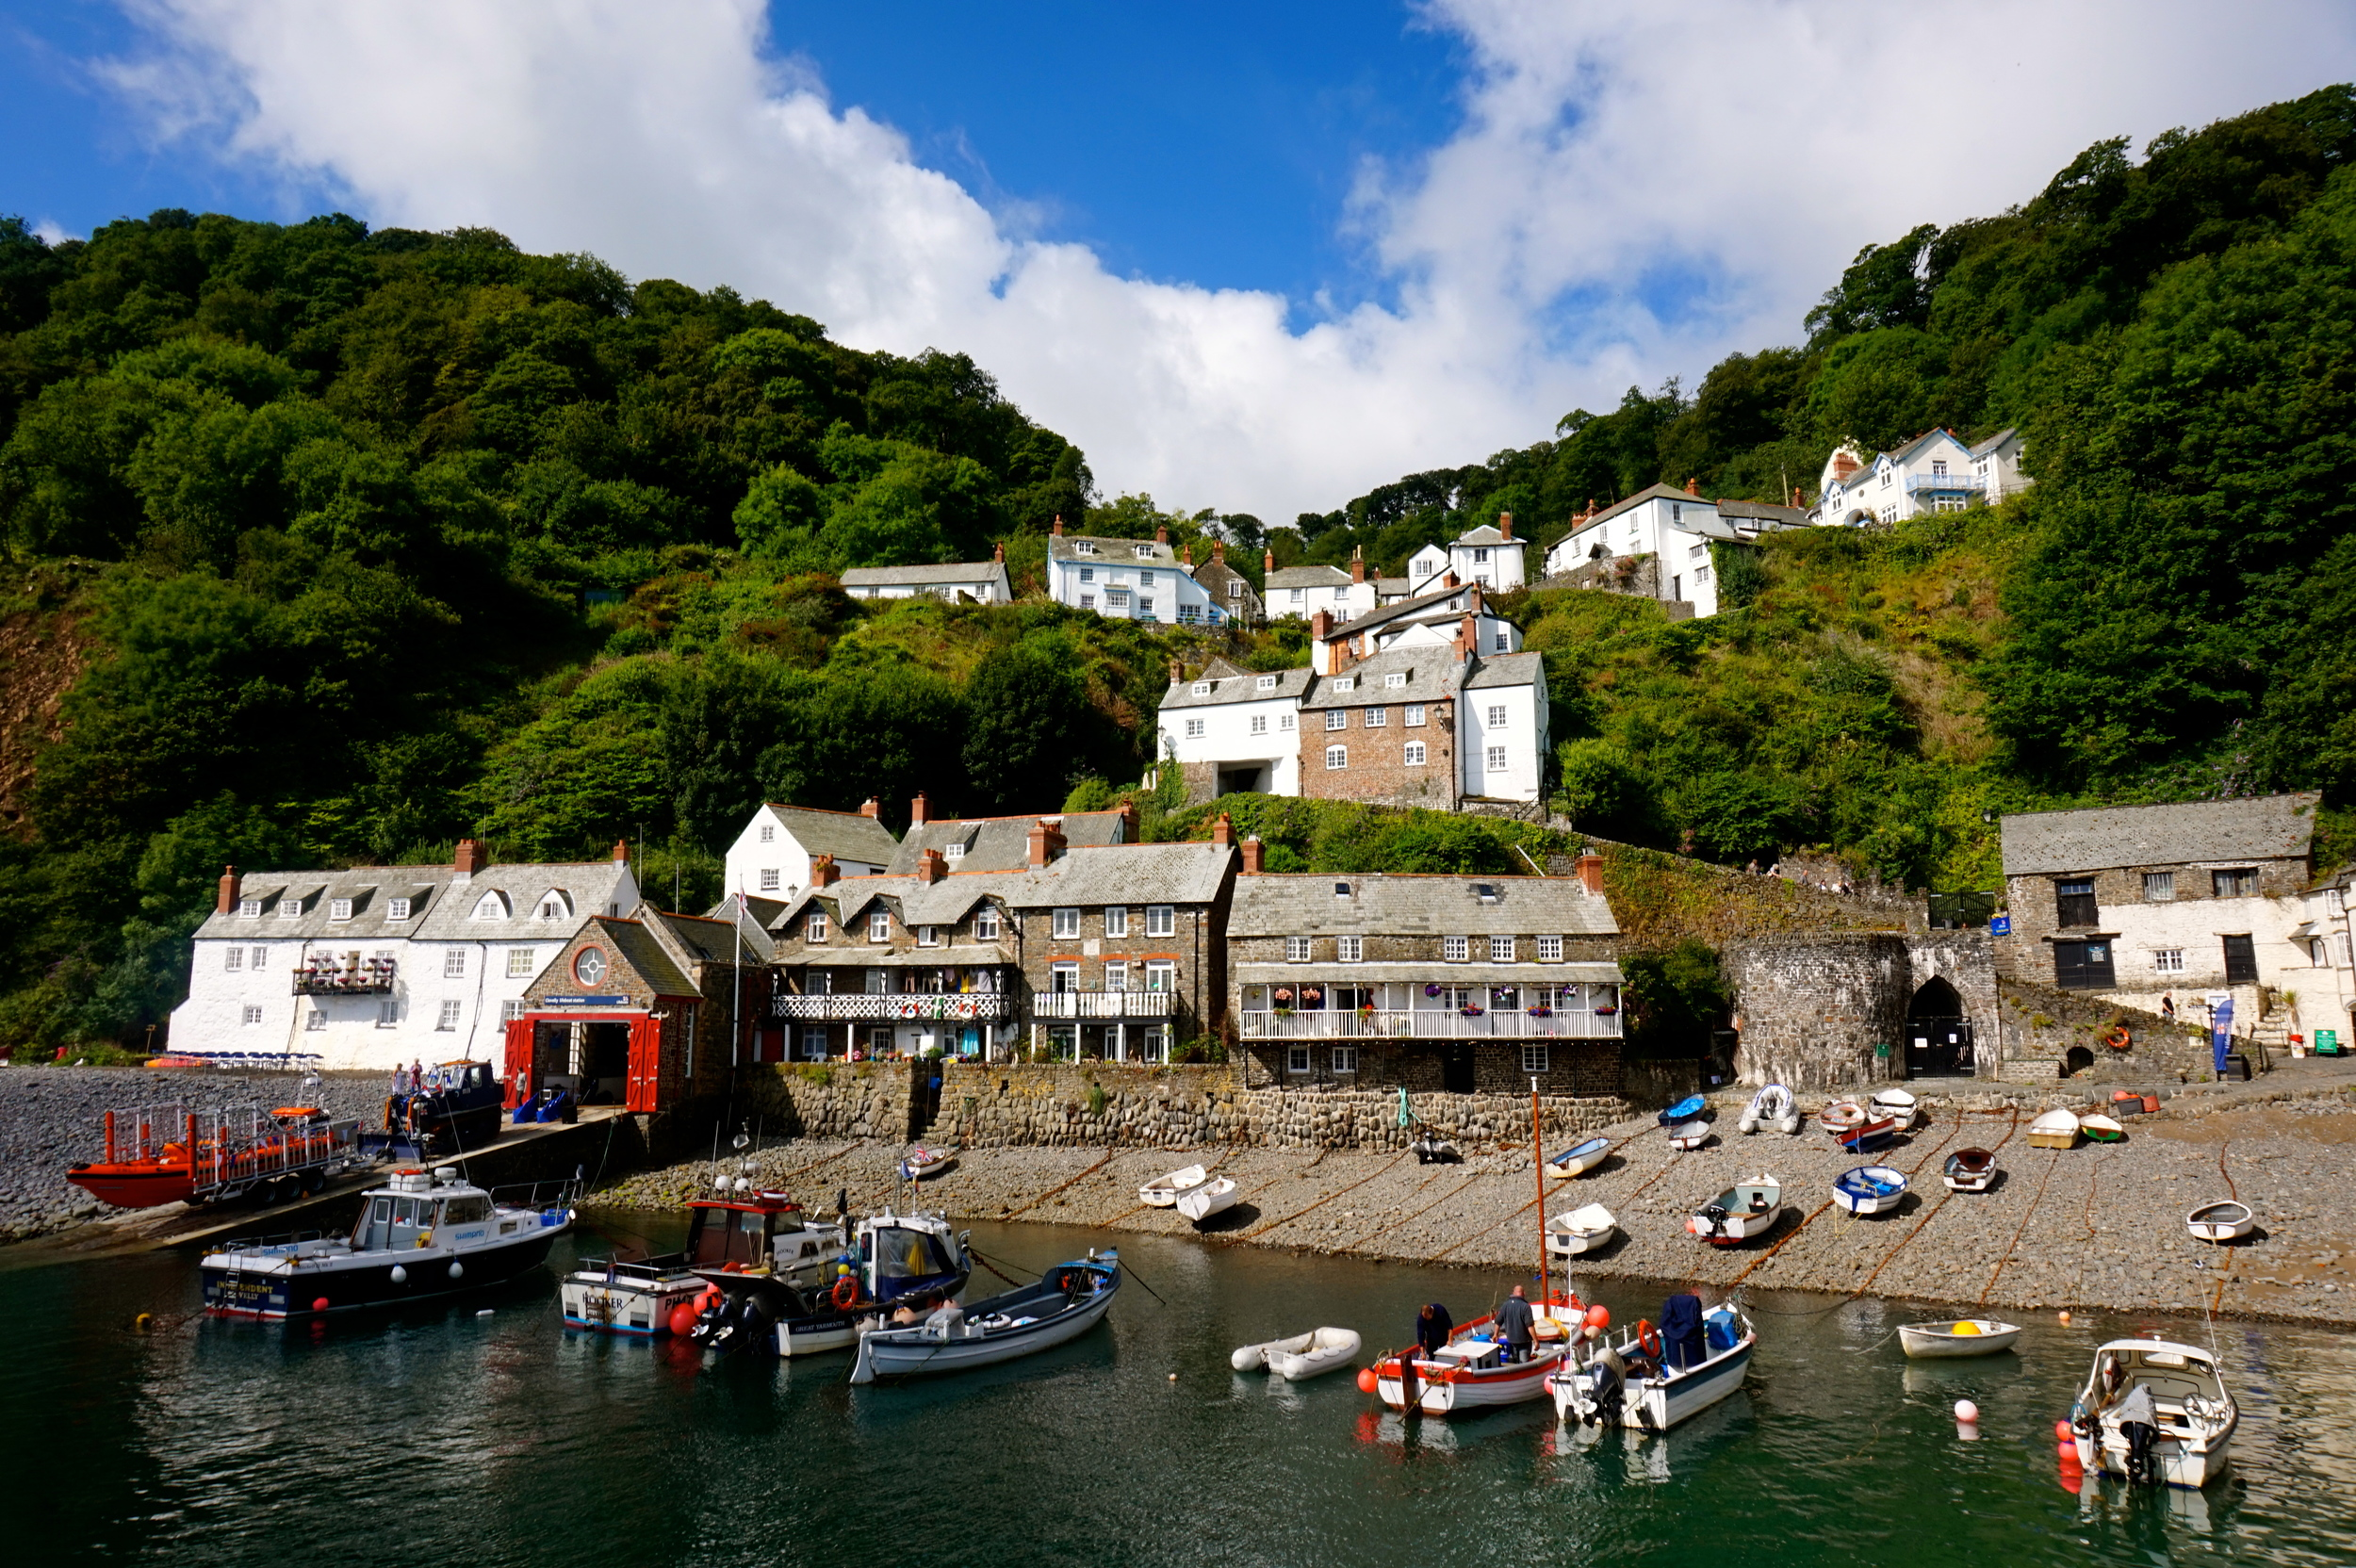 picturesque town by the sea